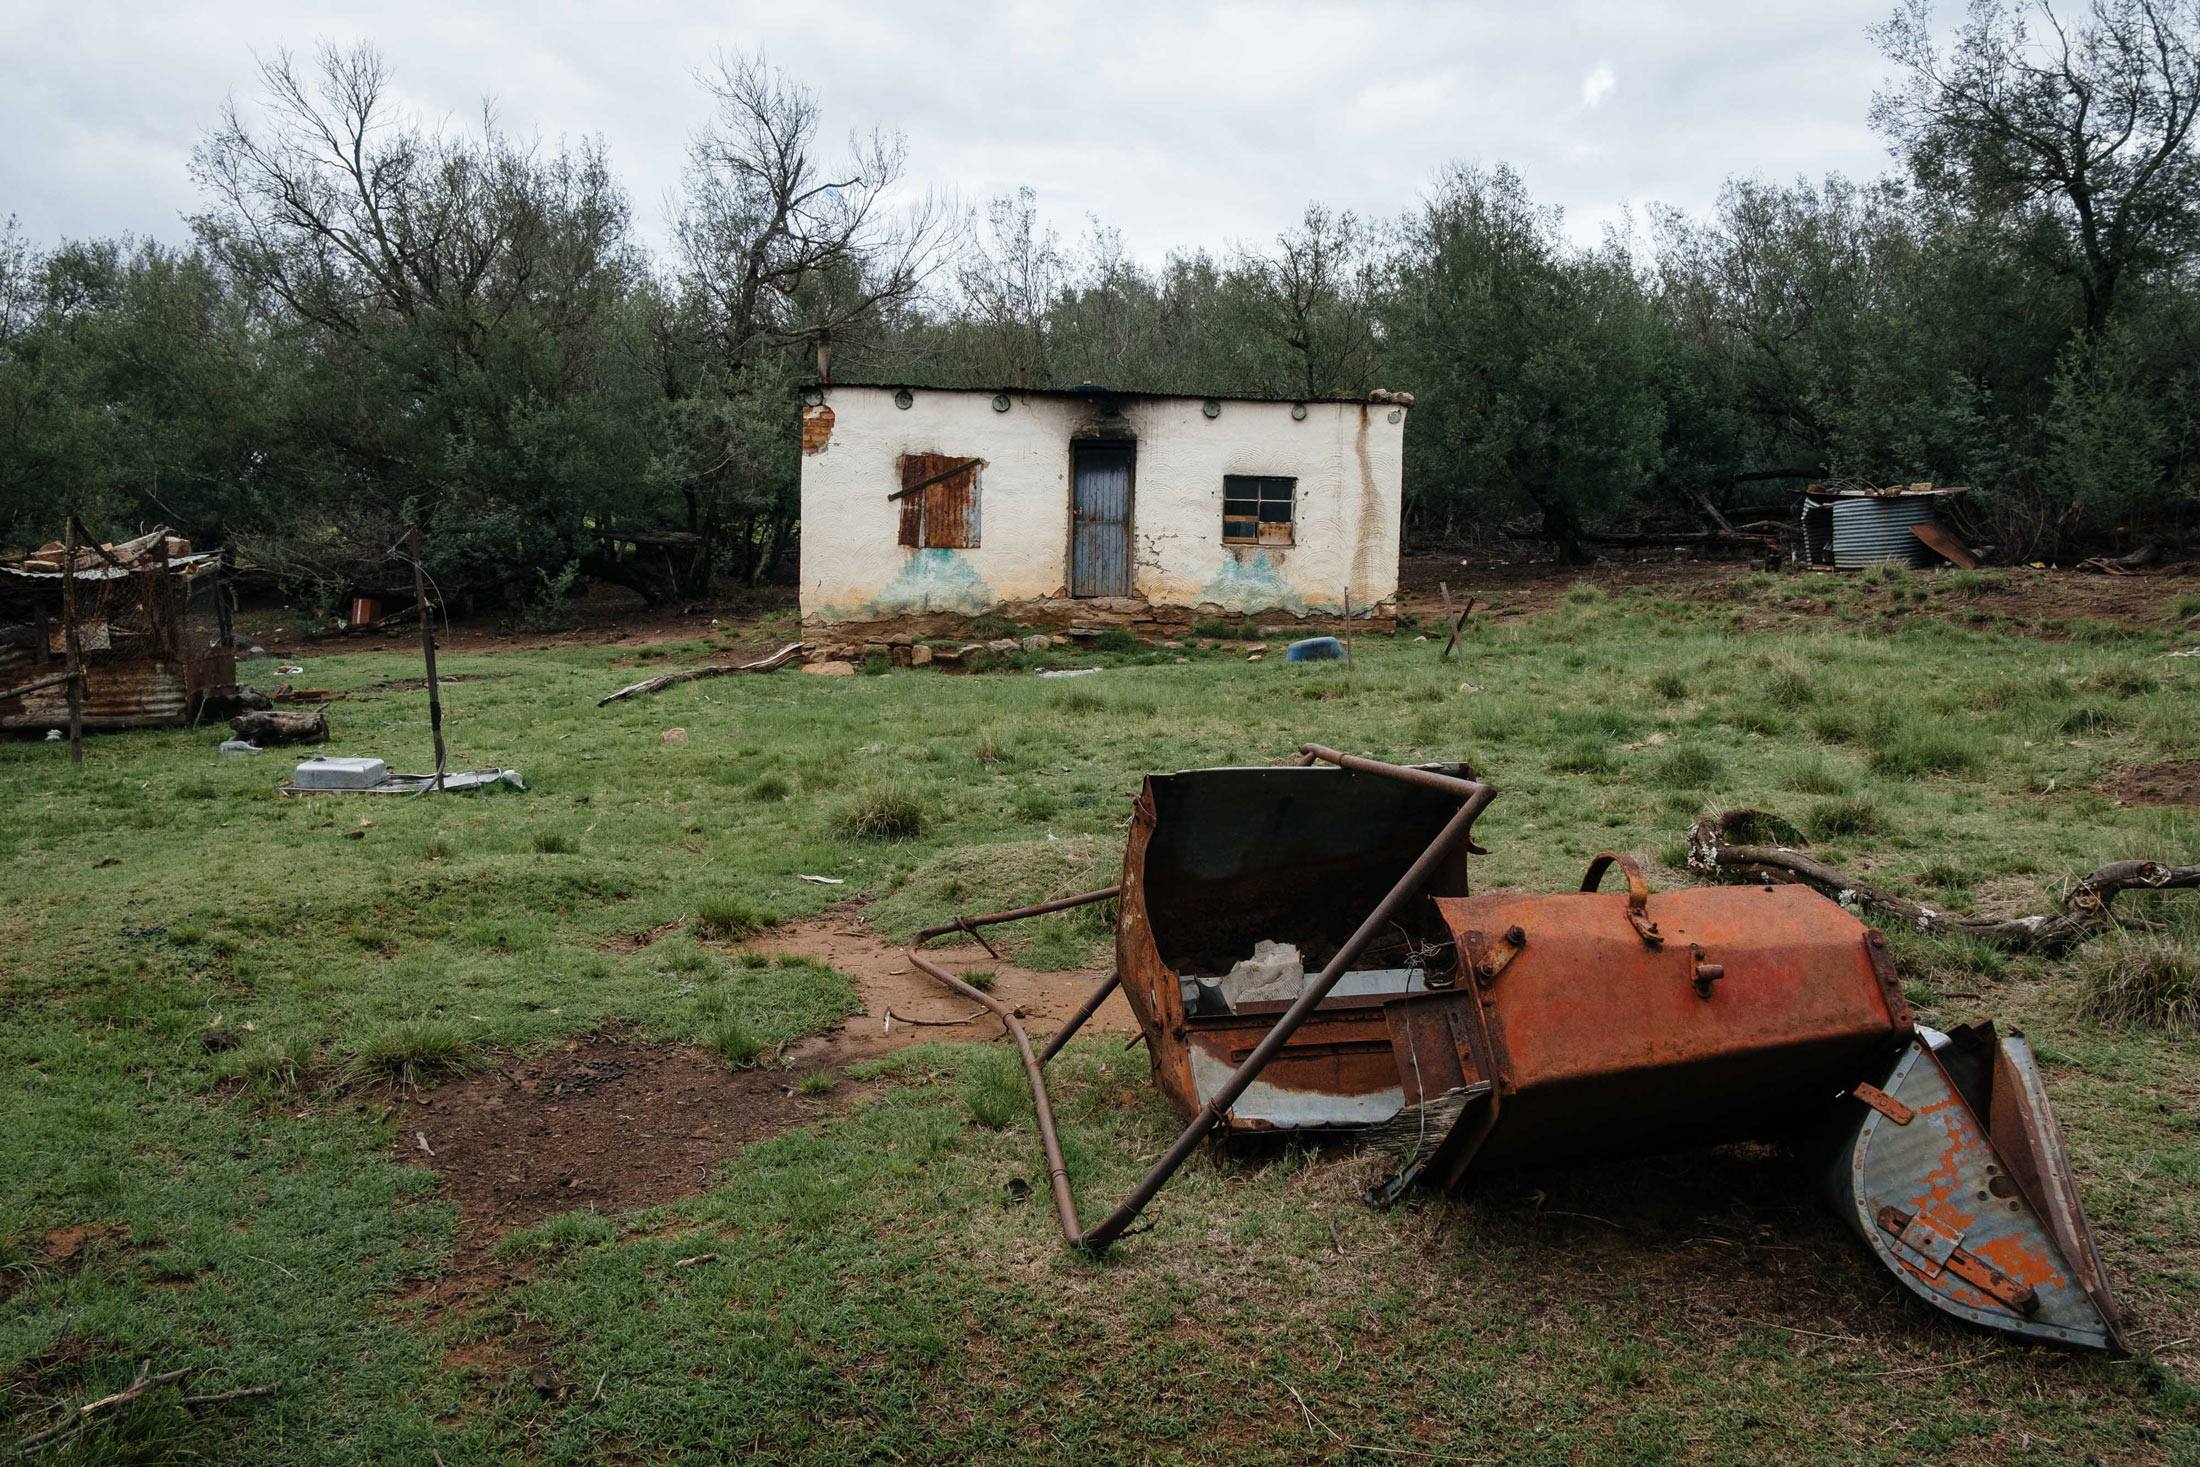 11 December 2019: The homestead from which Nolinette Nqoko was evicted on Orla Farm near Elliot, Chris Hani District, Eastern Cape after the farm was handed over to an emerging black farmer.